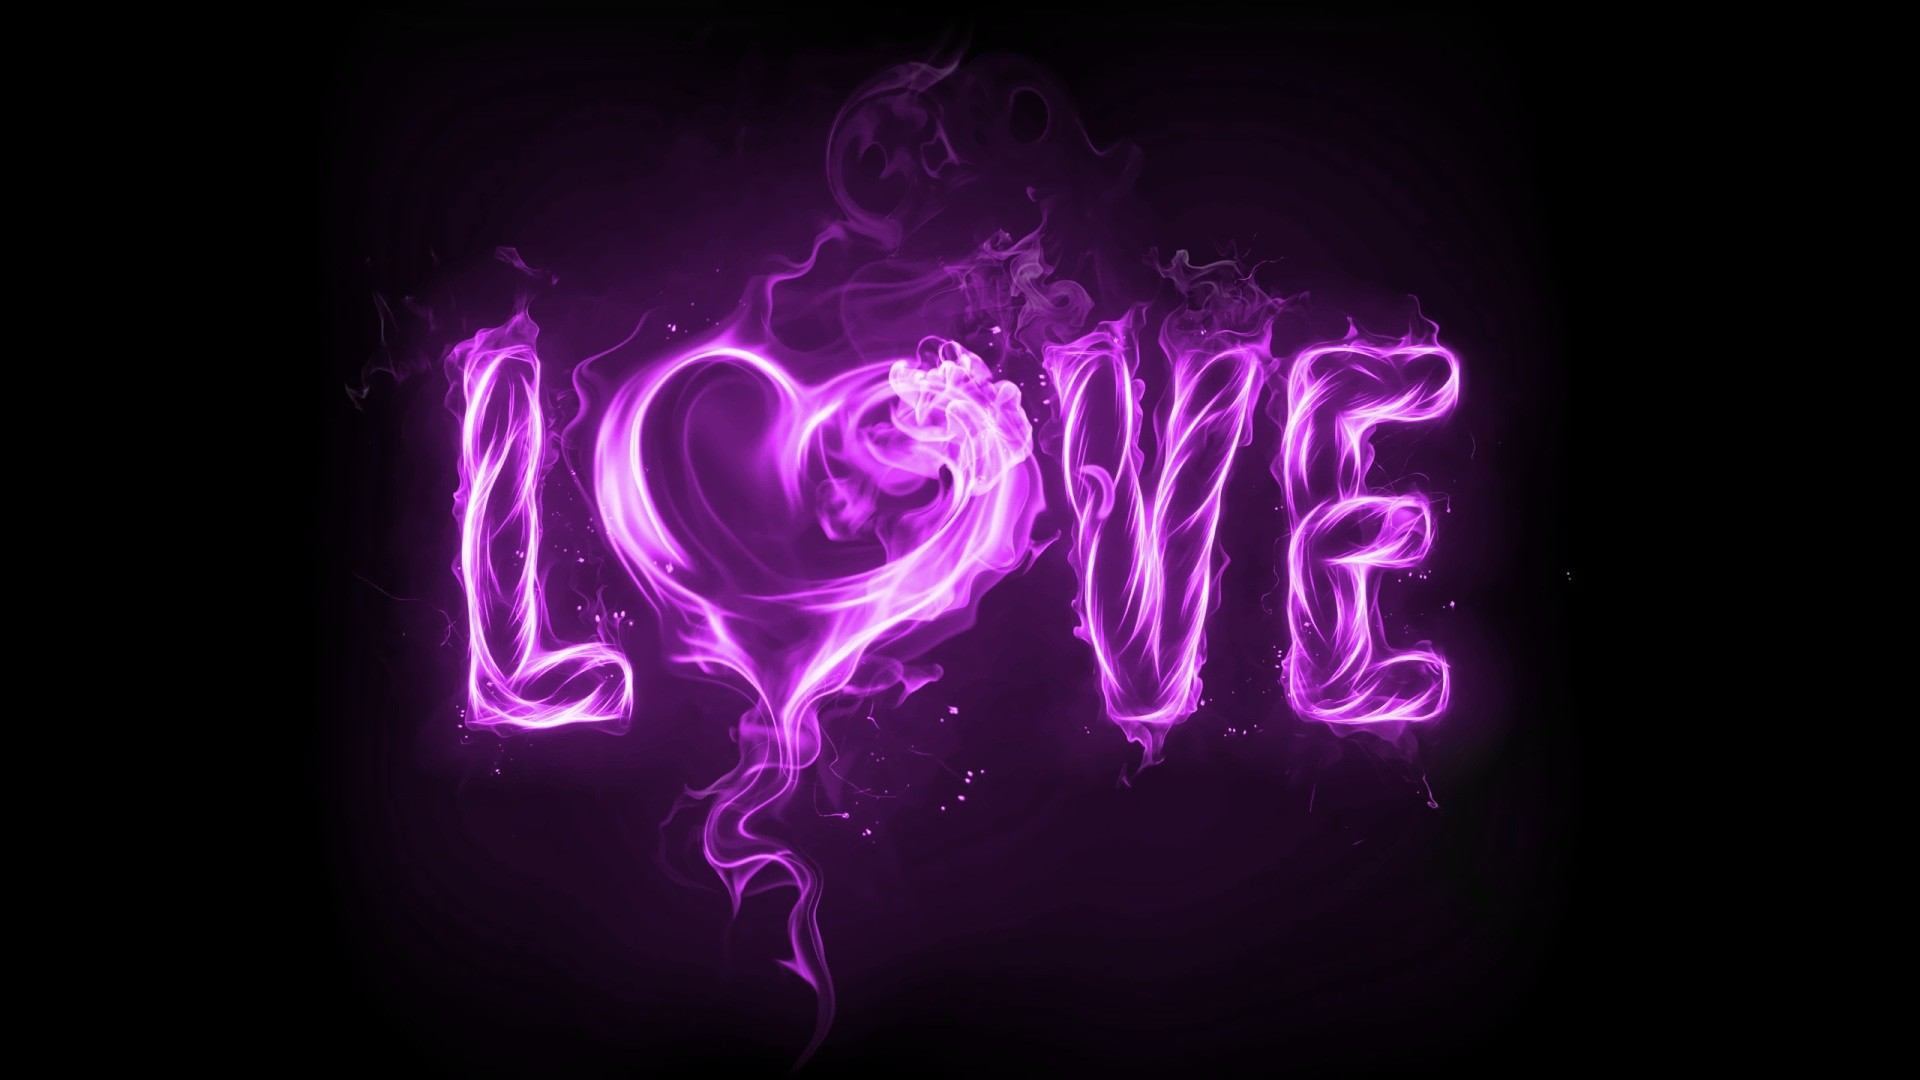 Purple Love Wallpaper. Best and fine collection of wallpapers HD in .